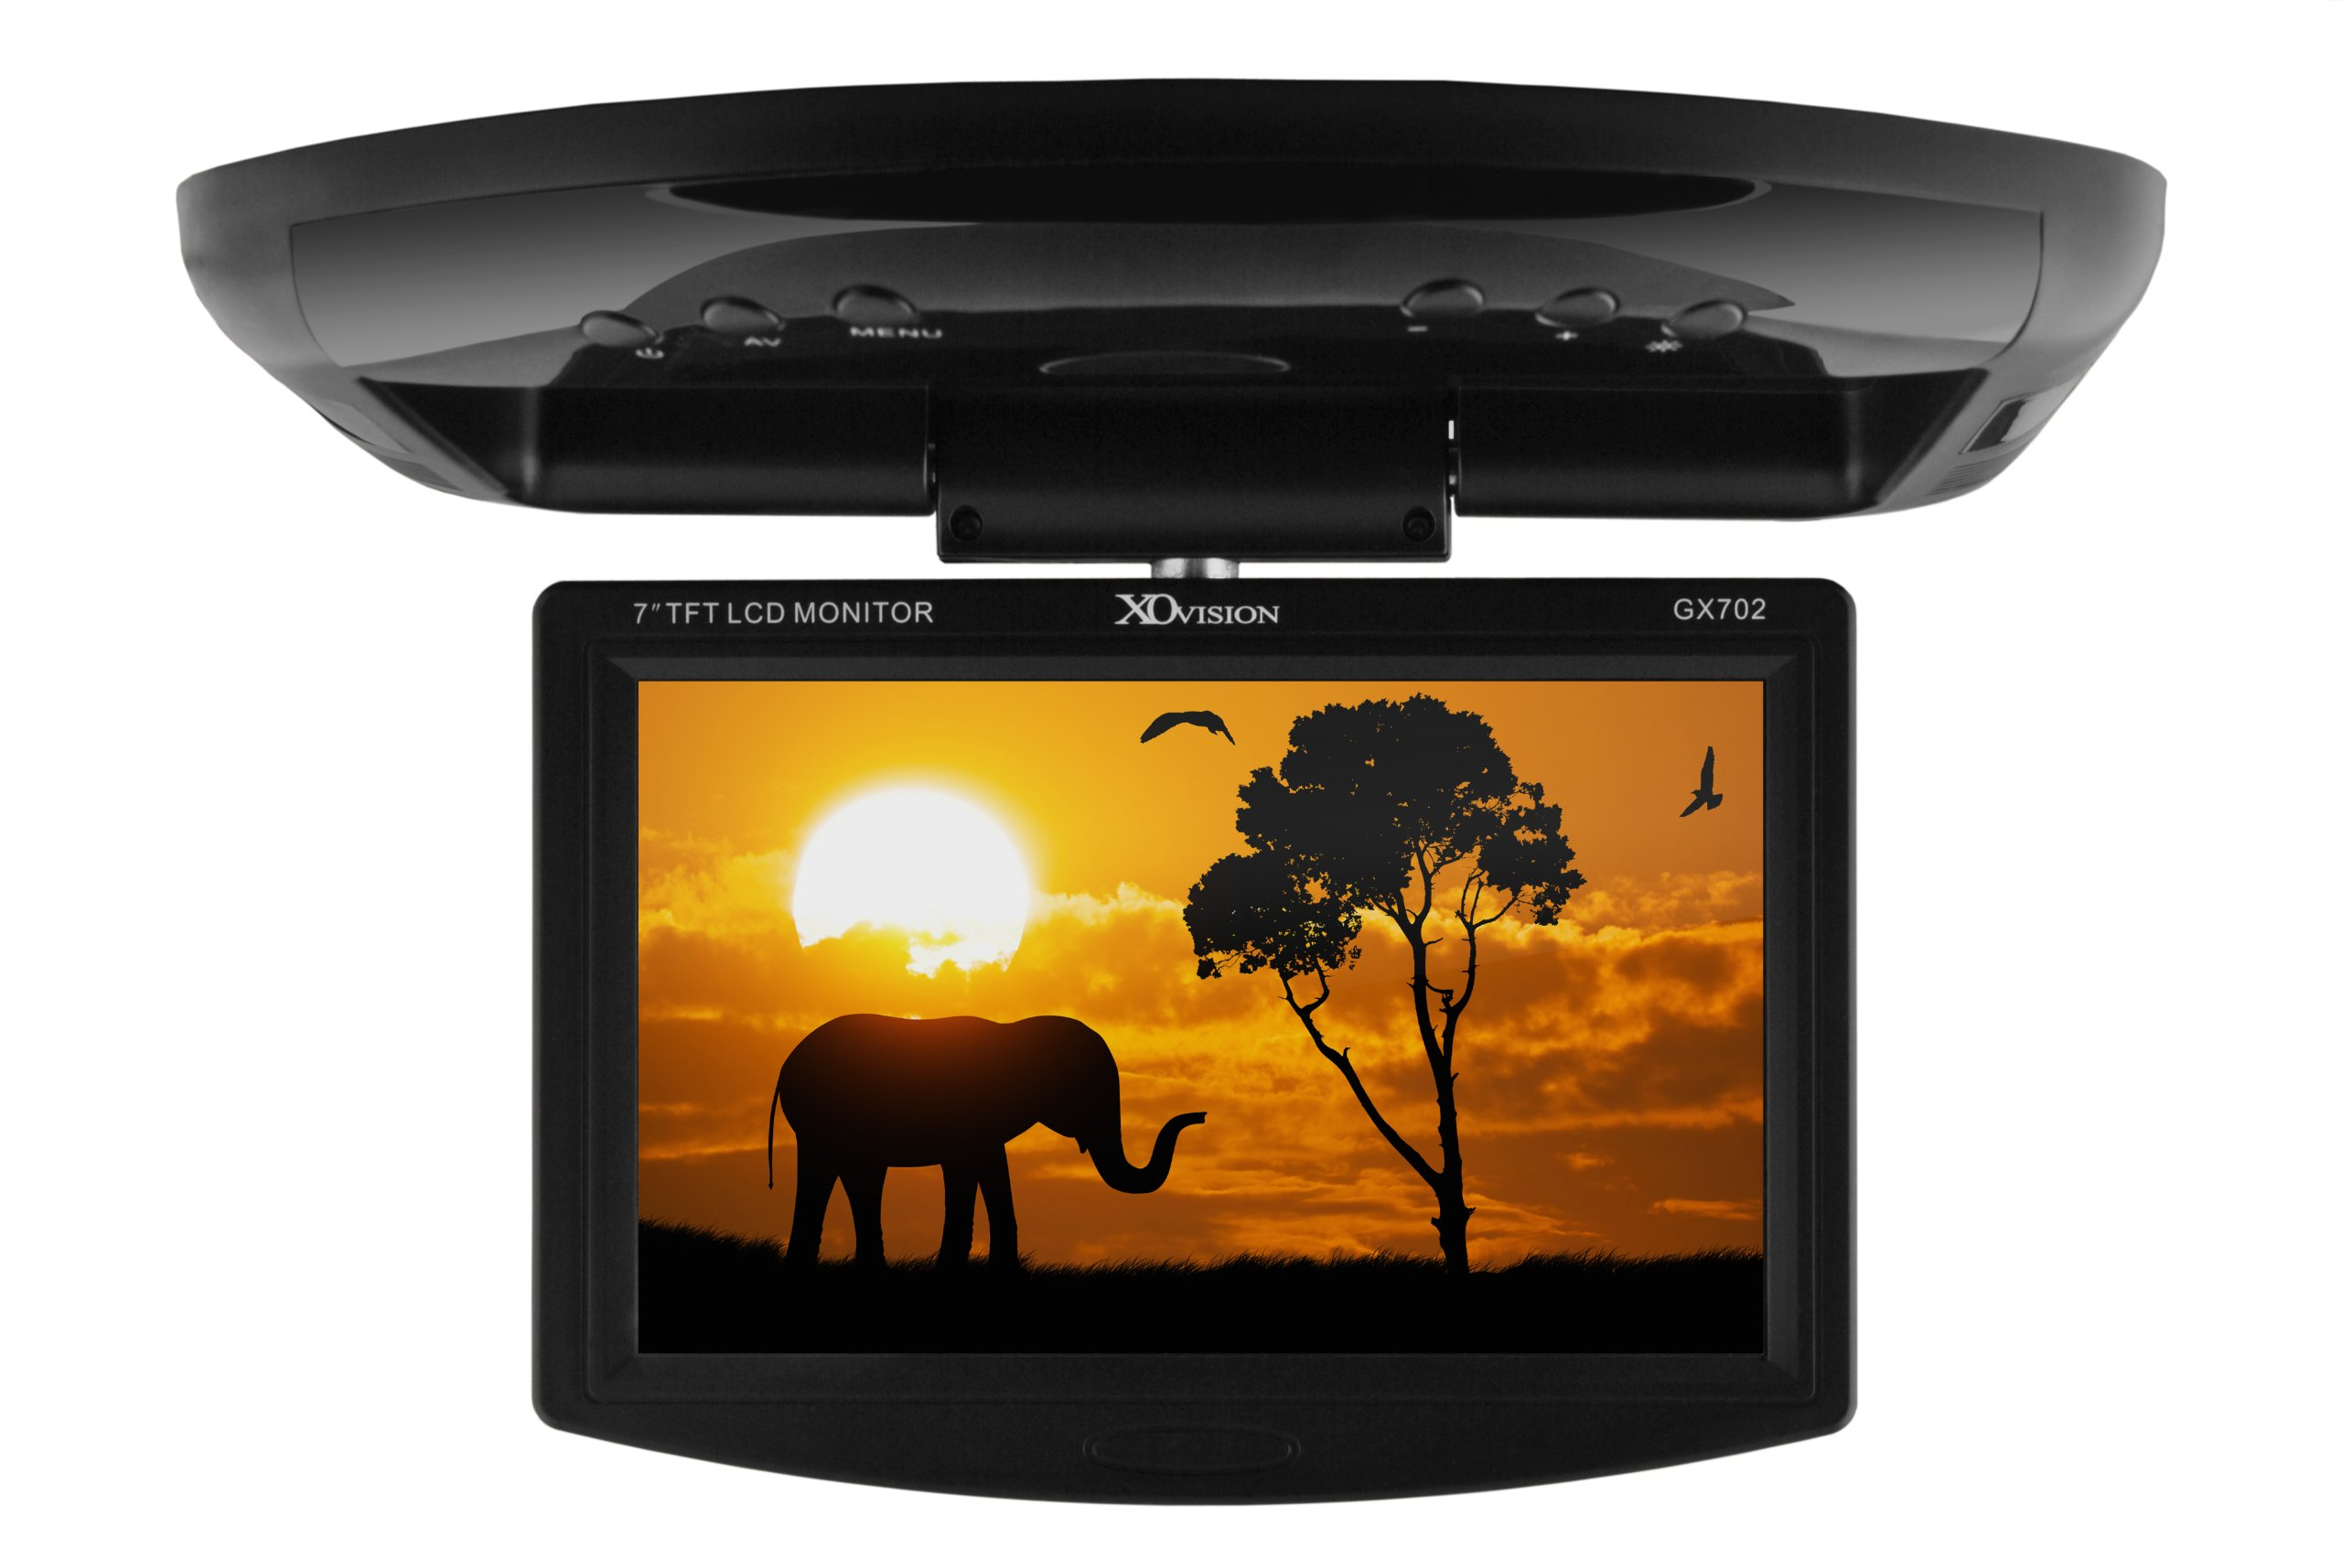 XO Vision 7-inch Widescreen Overhead Monitor with IR Transmitter for in Car Entertainment